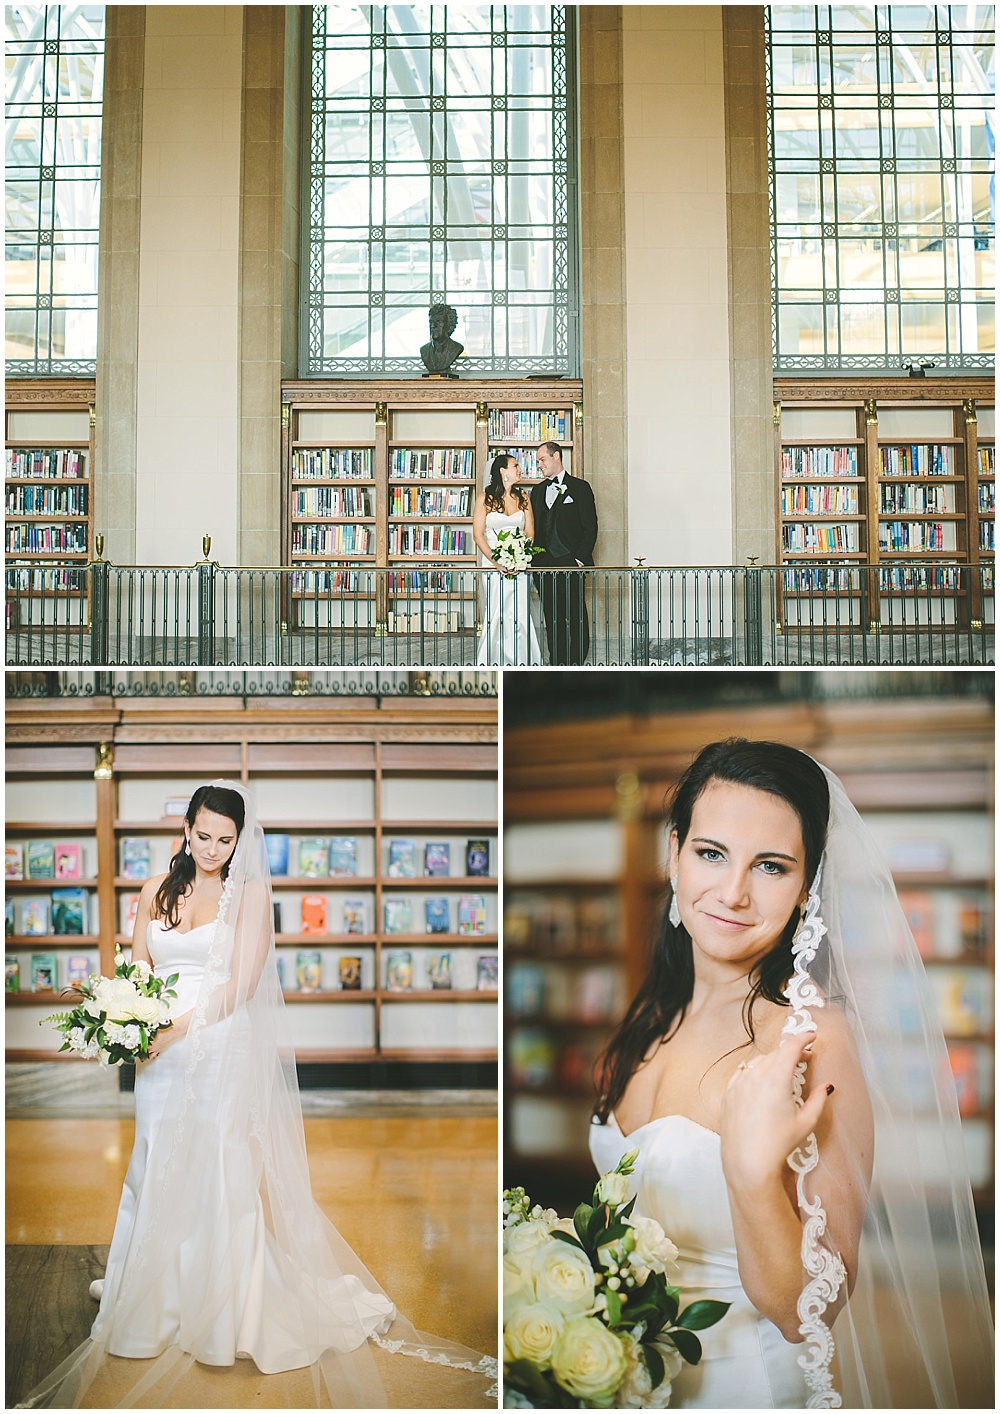 A timeless, modern wedding celebration at the Indianapolis Public Library. Bride and groom library portraits. | Jessica Dum Wedding Coordination